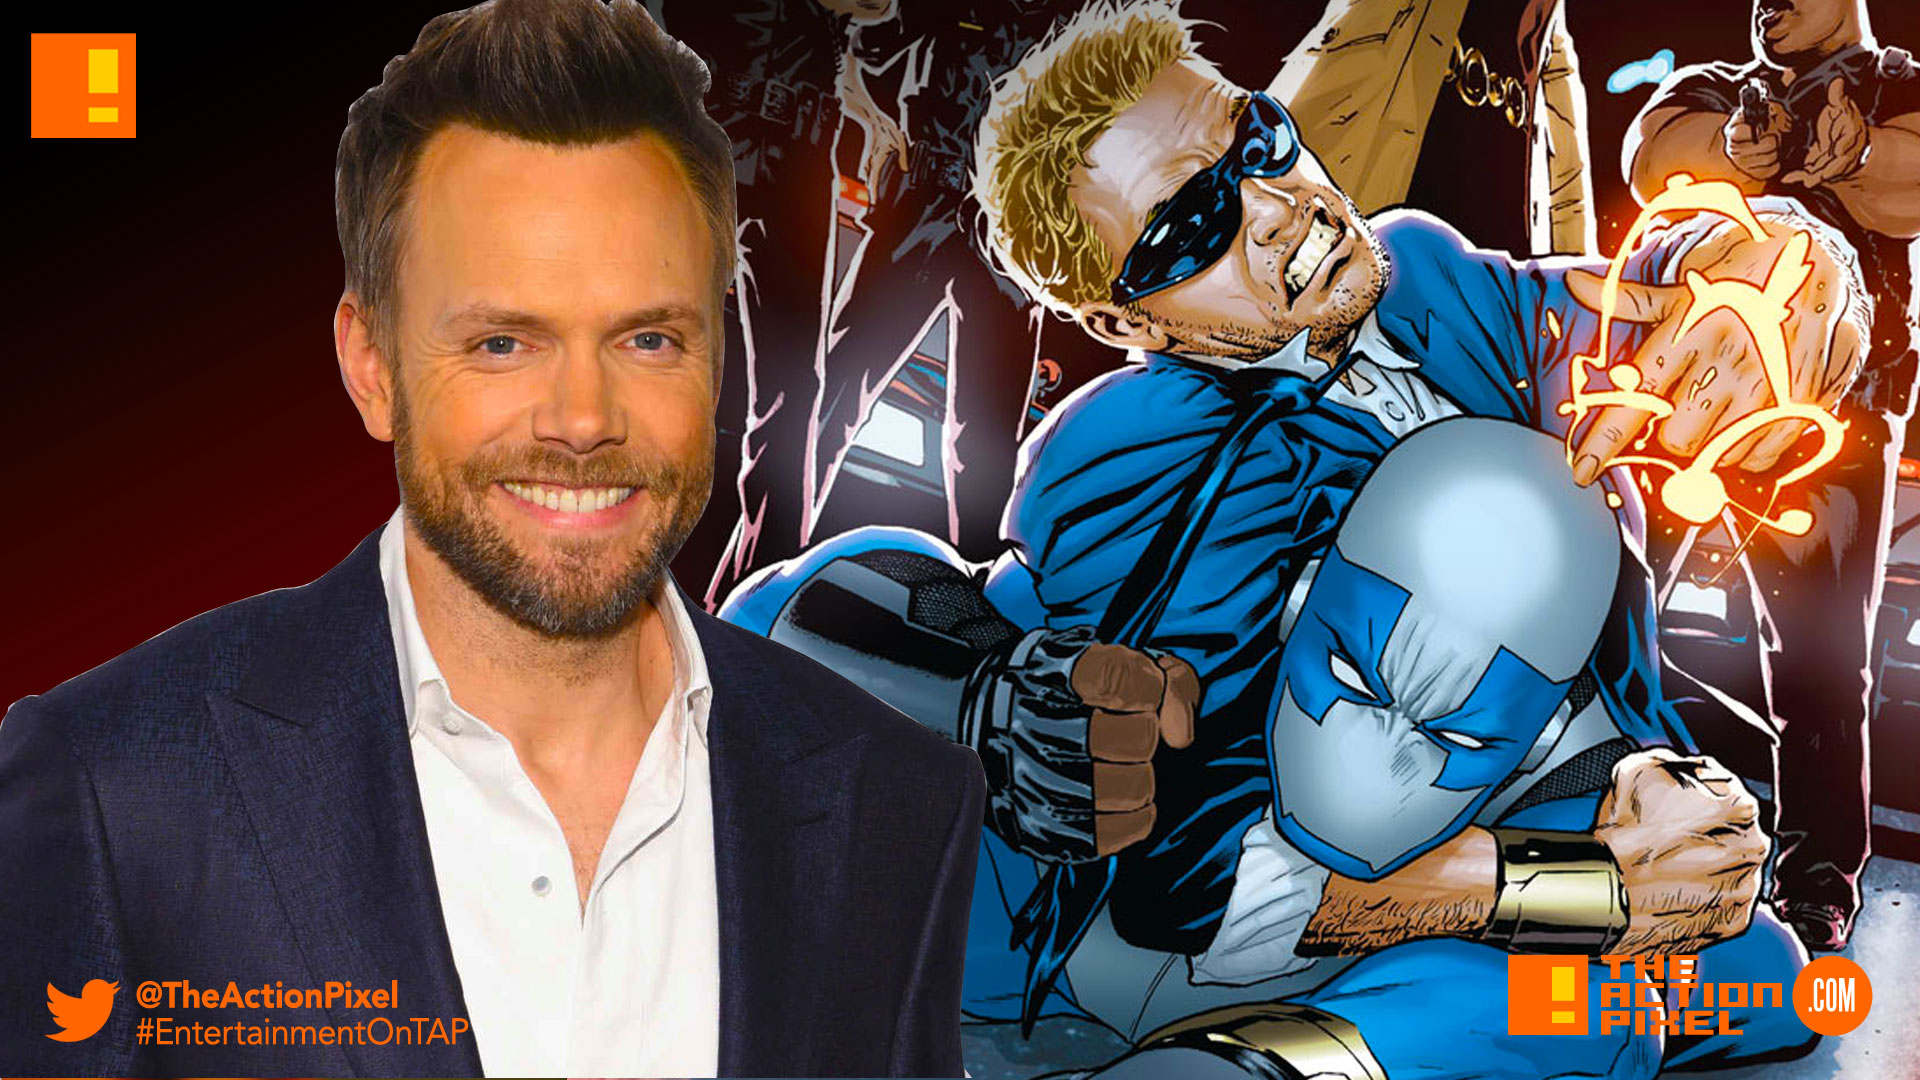 joel mchale,quantum and woody, quantum and woody, valiant comics, the action pixel, entertainment on tap, the action pixel